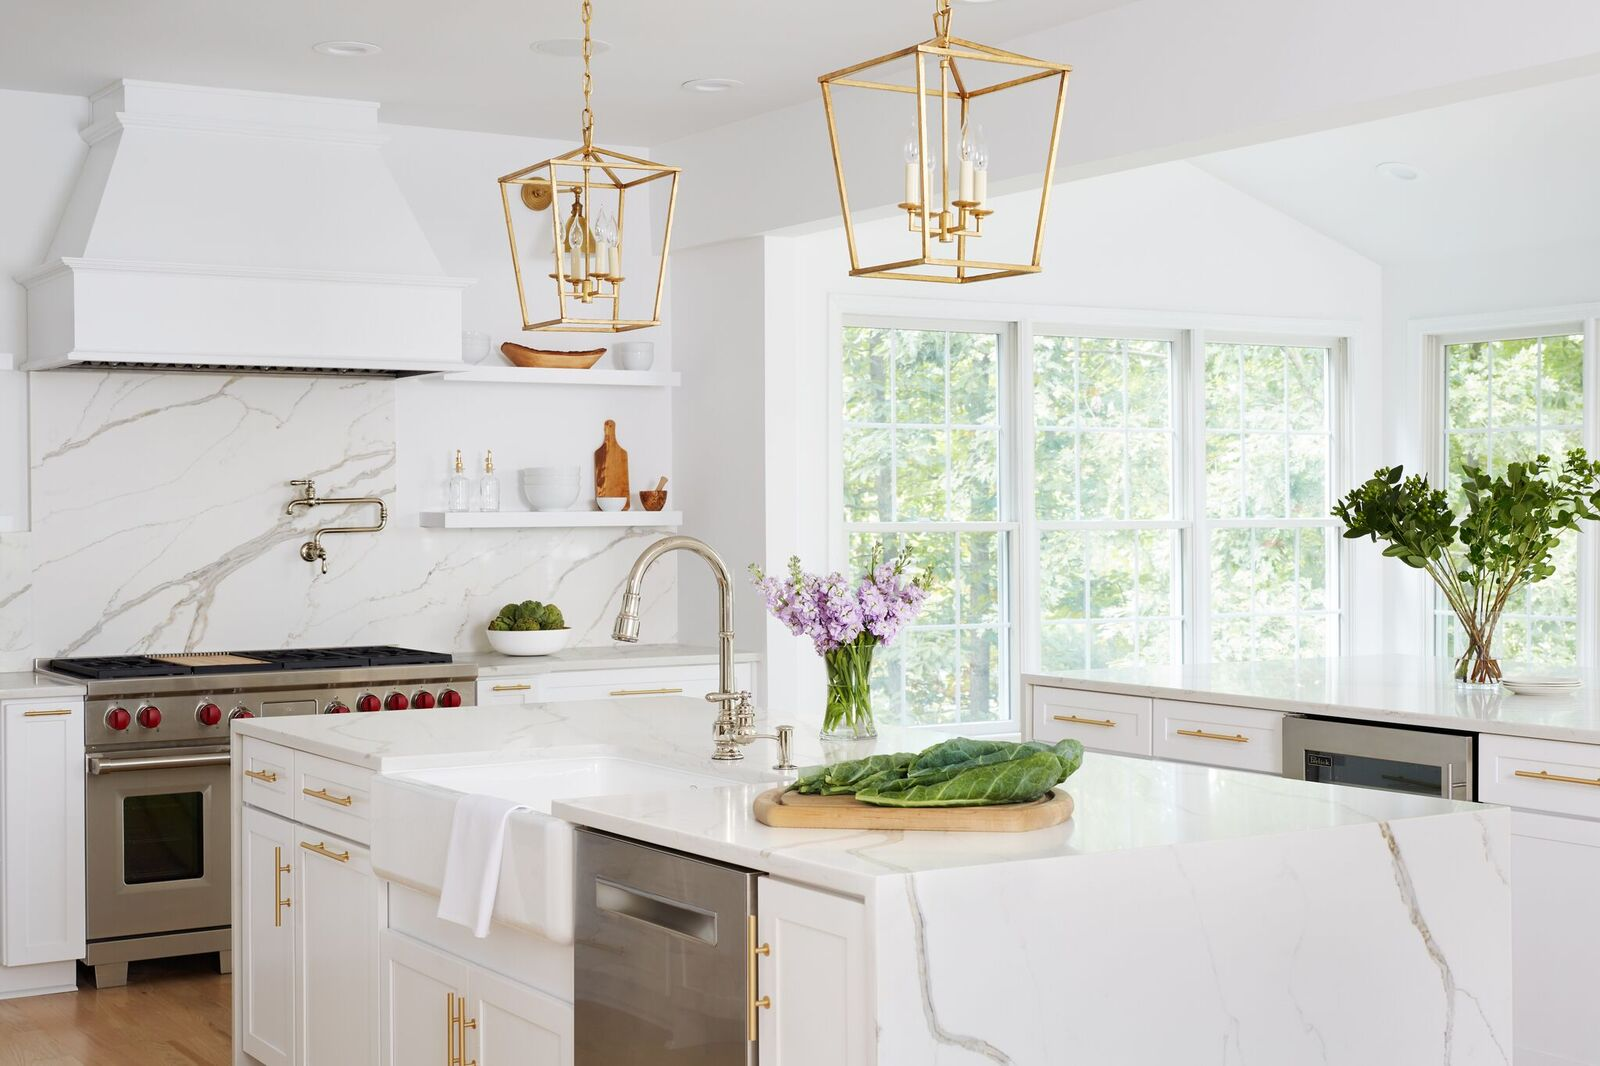 MyDomaine Feature On Our White Kitchen Remodel/Shop the Look — JWS ...